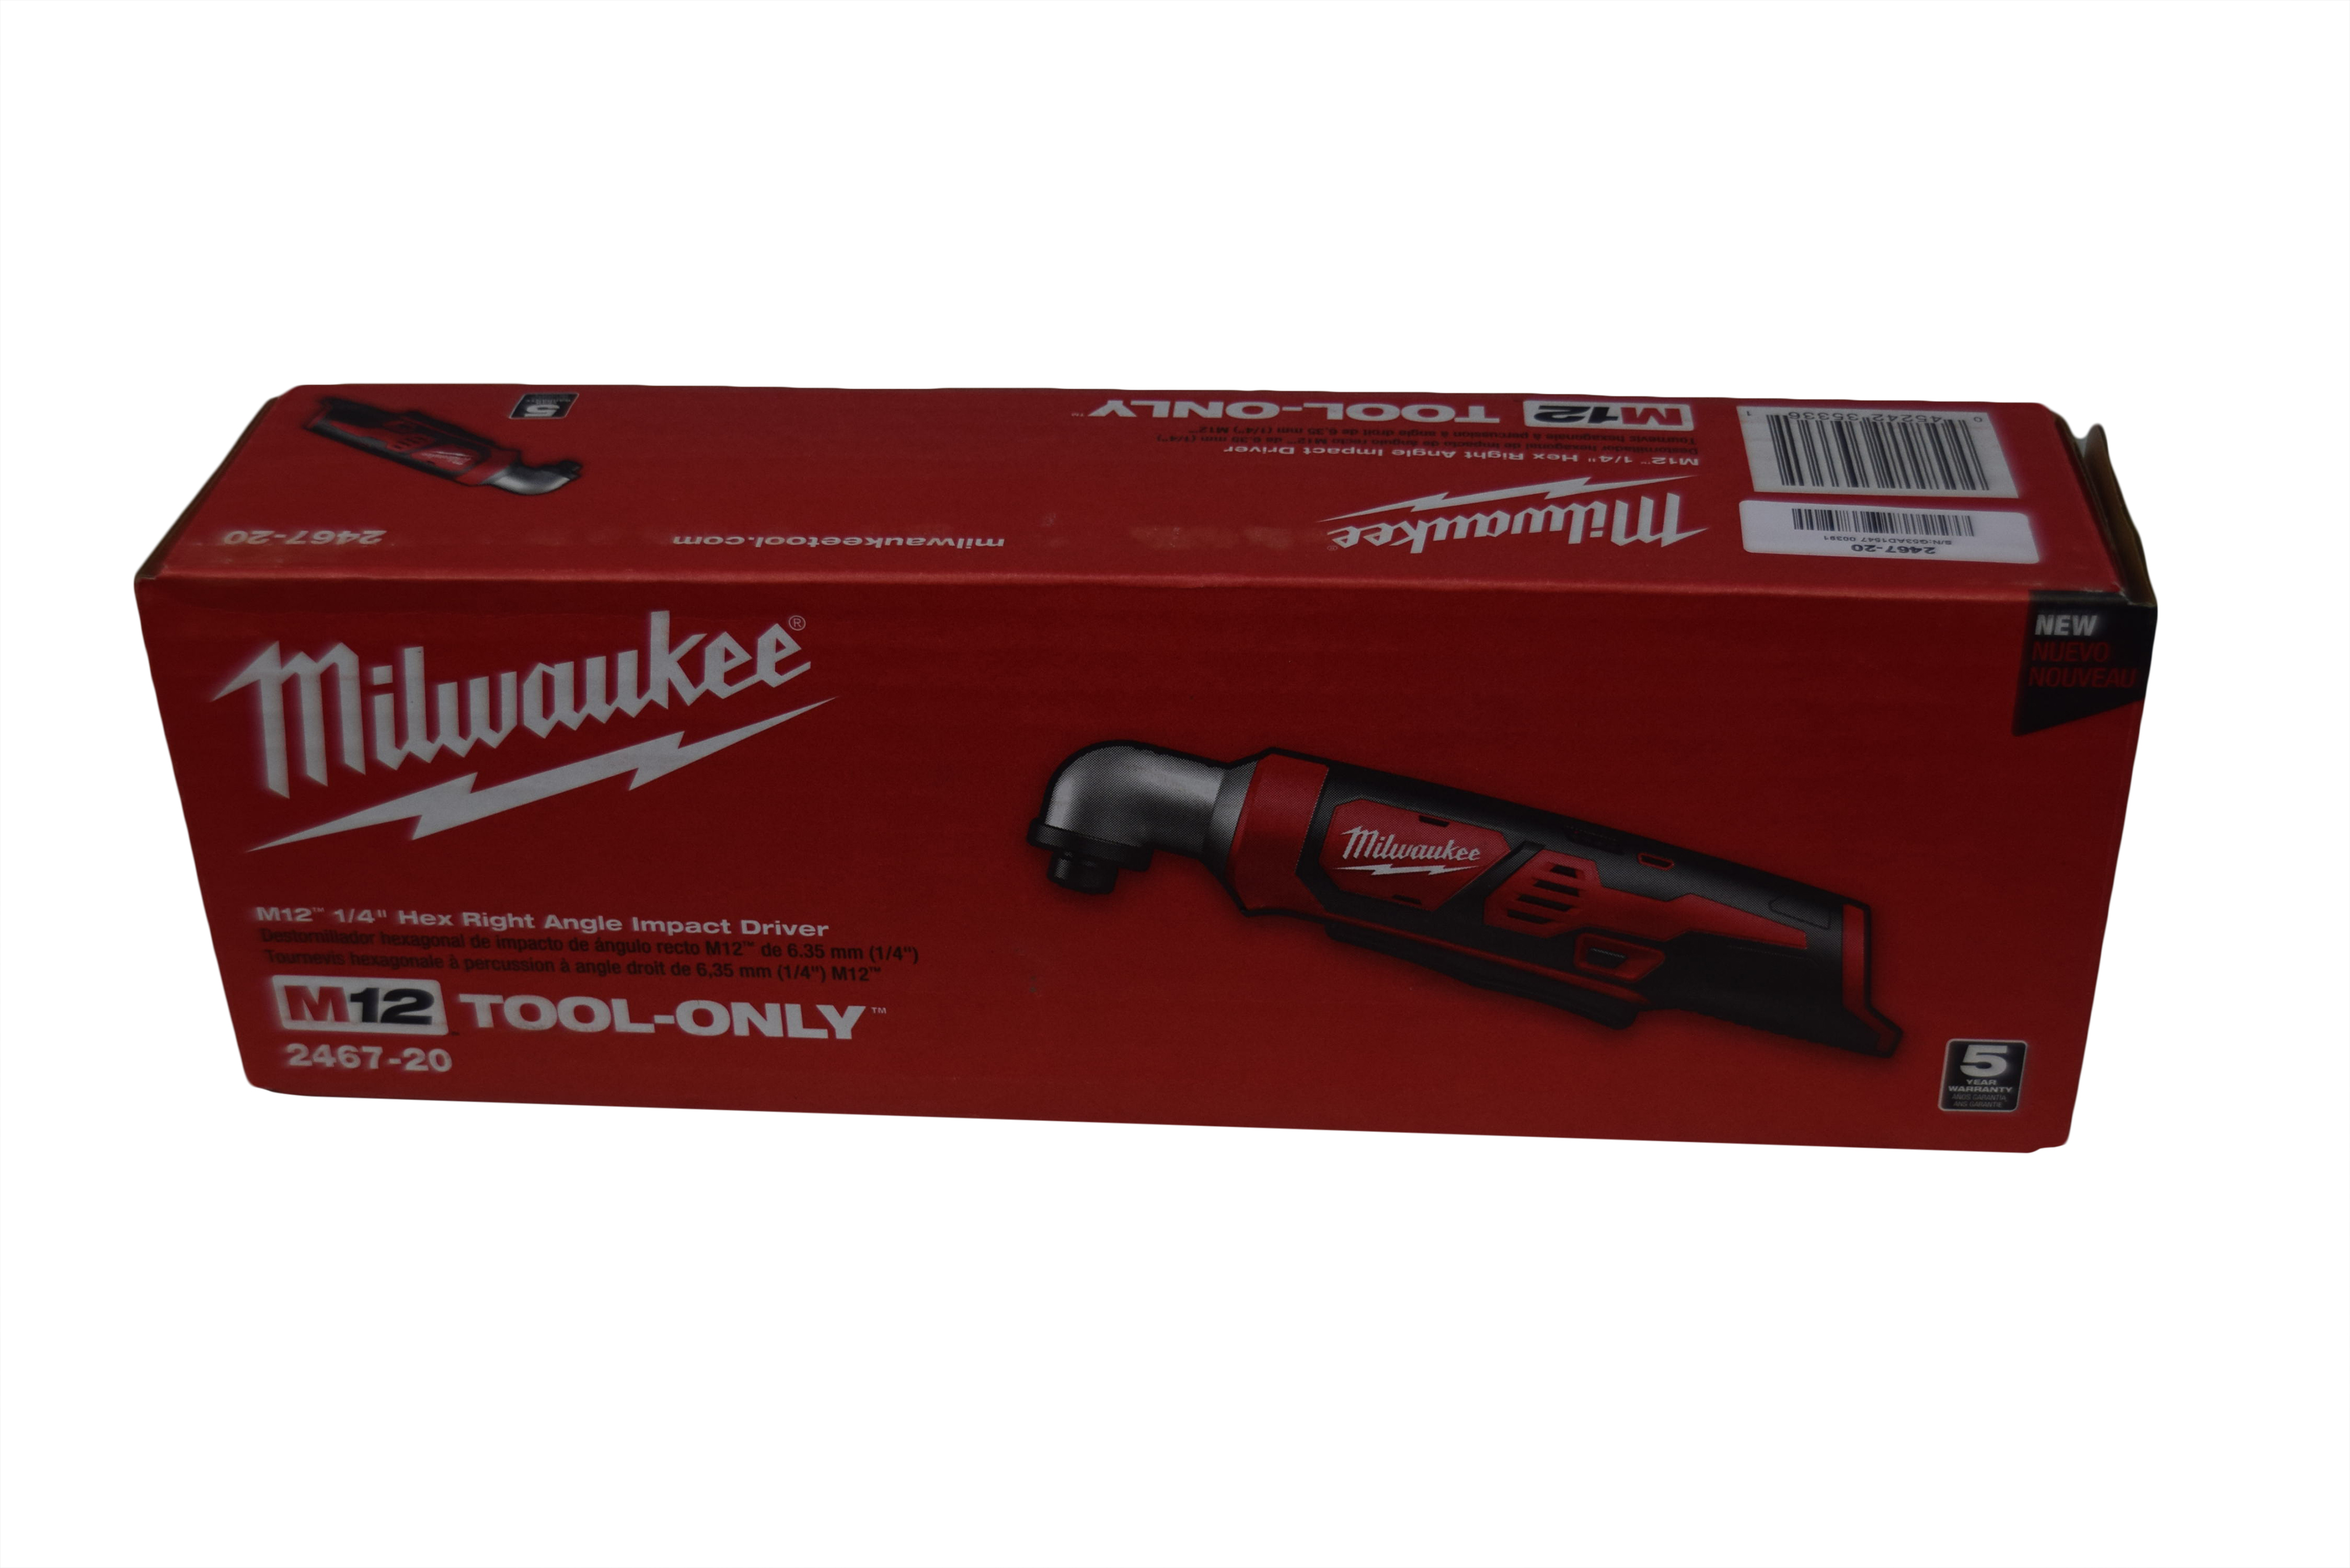 """Milwaukee 2467-20 M12 12V 1 4"""" Hex Right Angle Impact Driver Bare Tool Cordless by Milwaukee"""